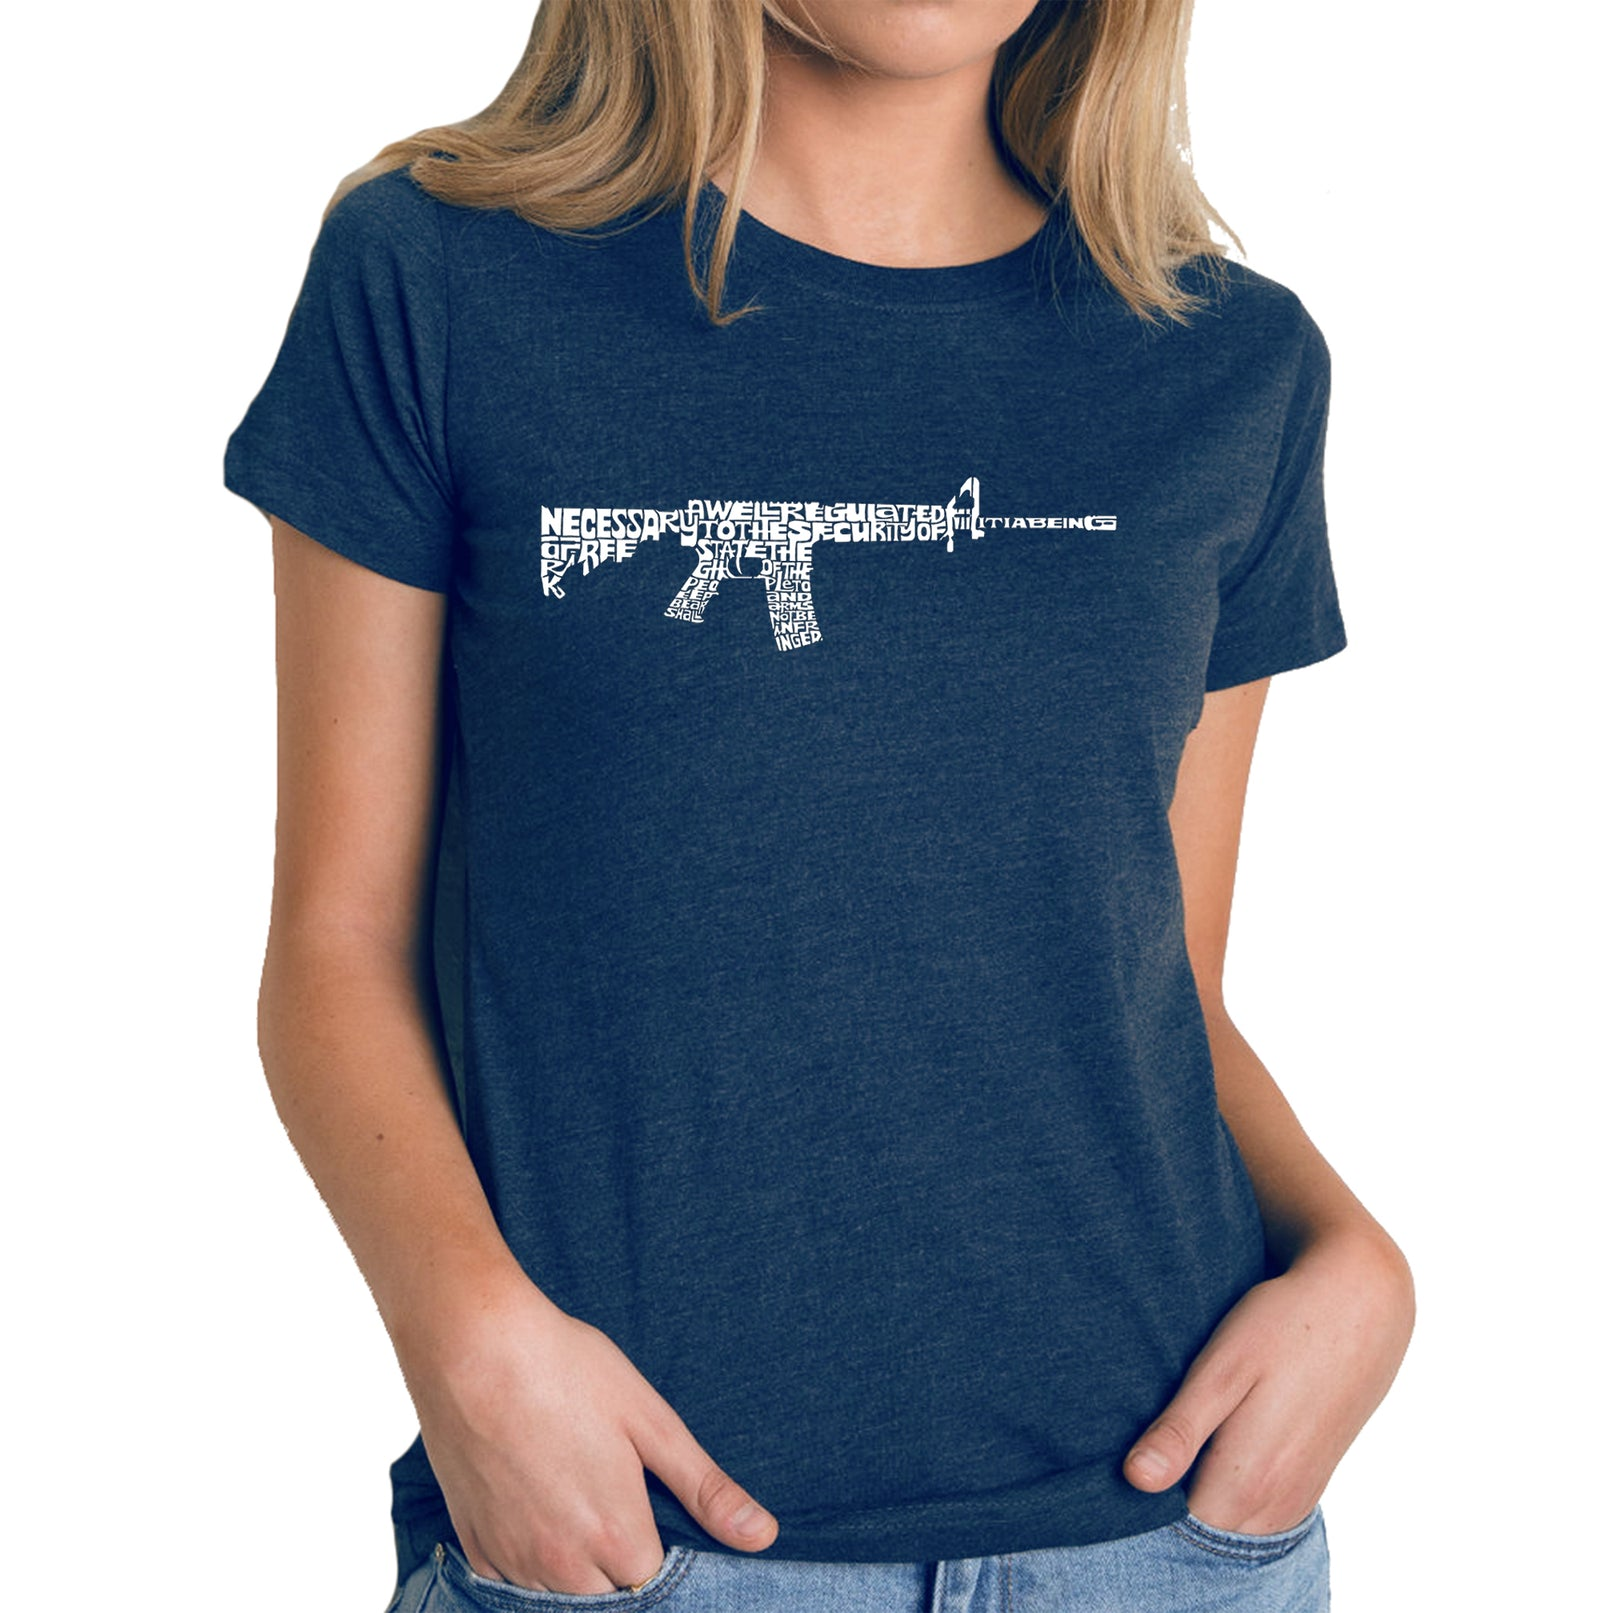 Women's Premium Blend Word Art T-shirt - AR15 2nd Amendment Word Art